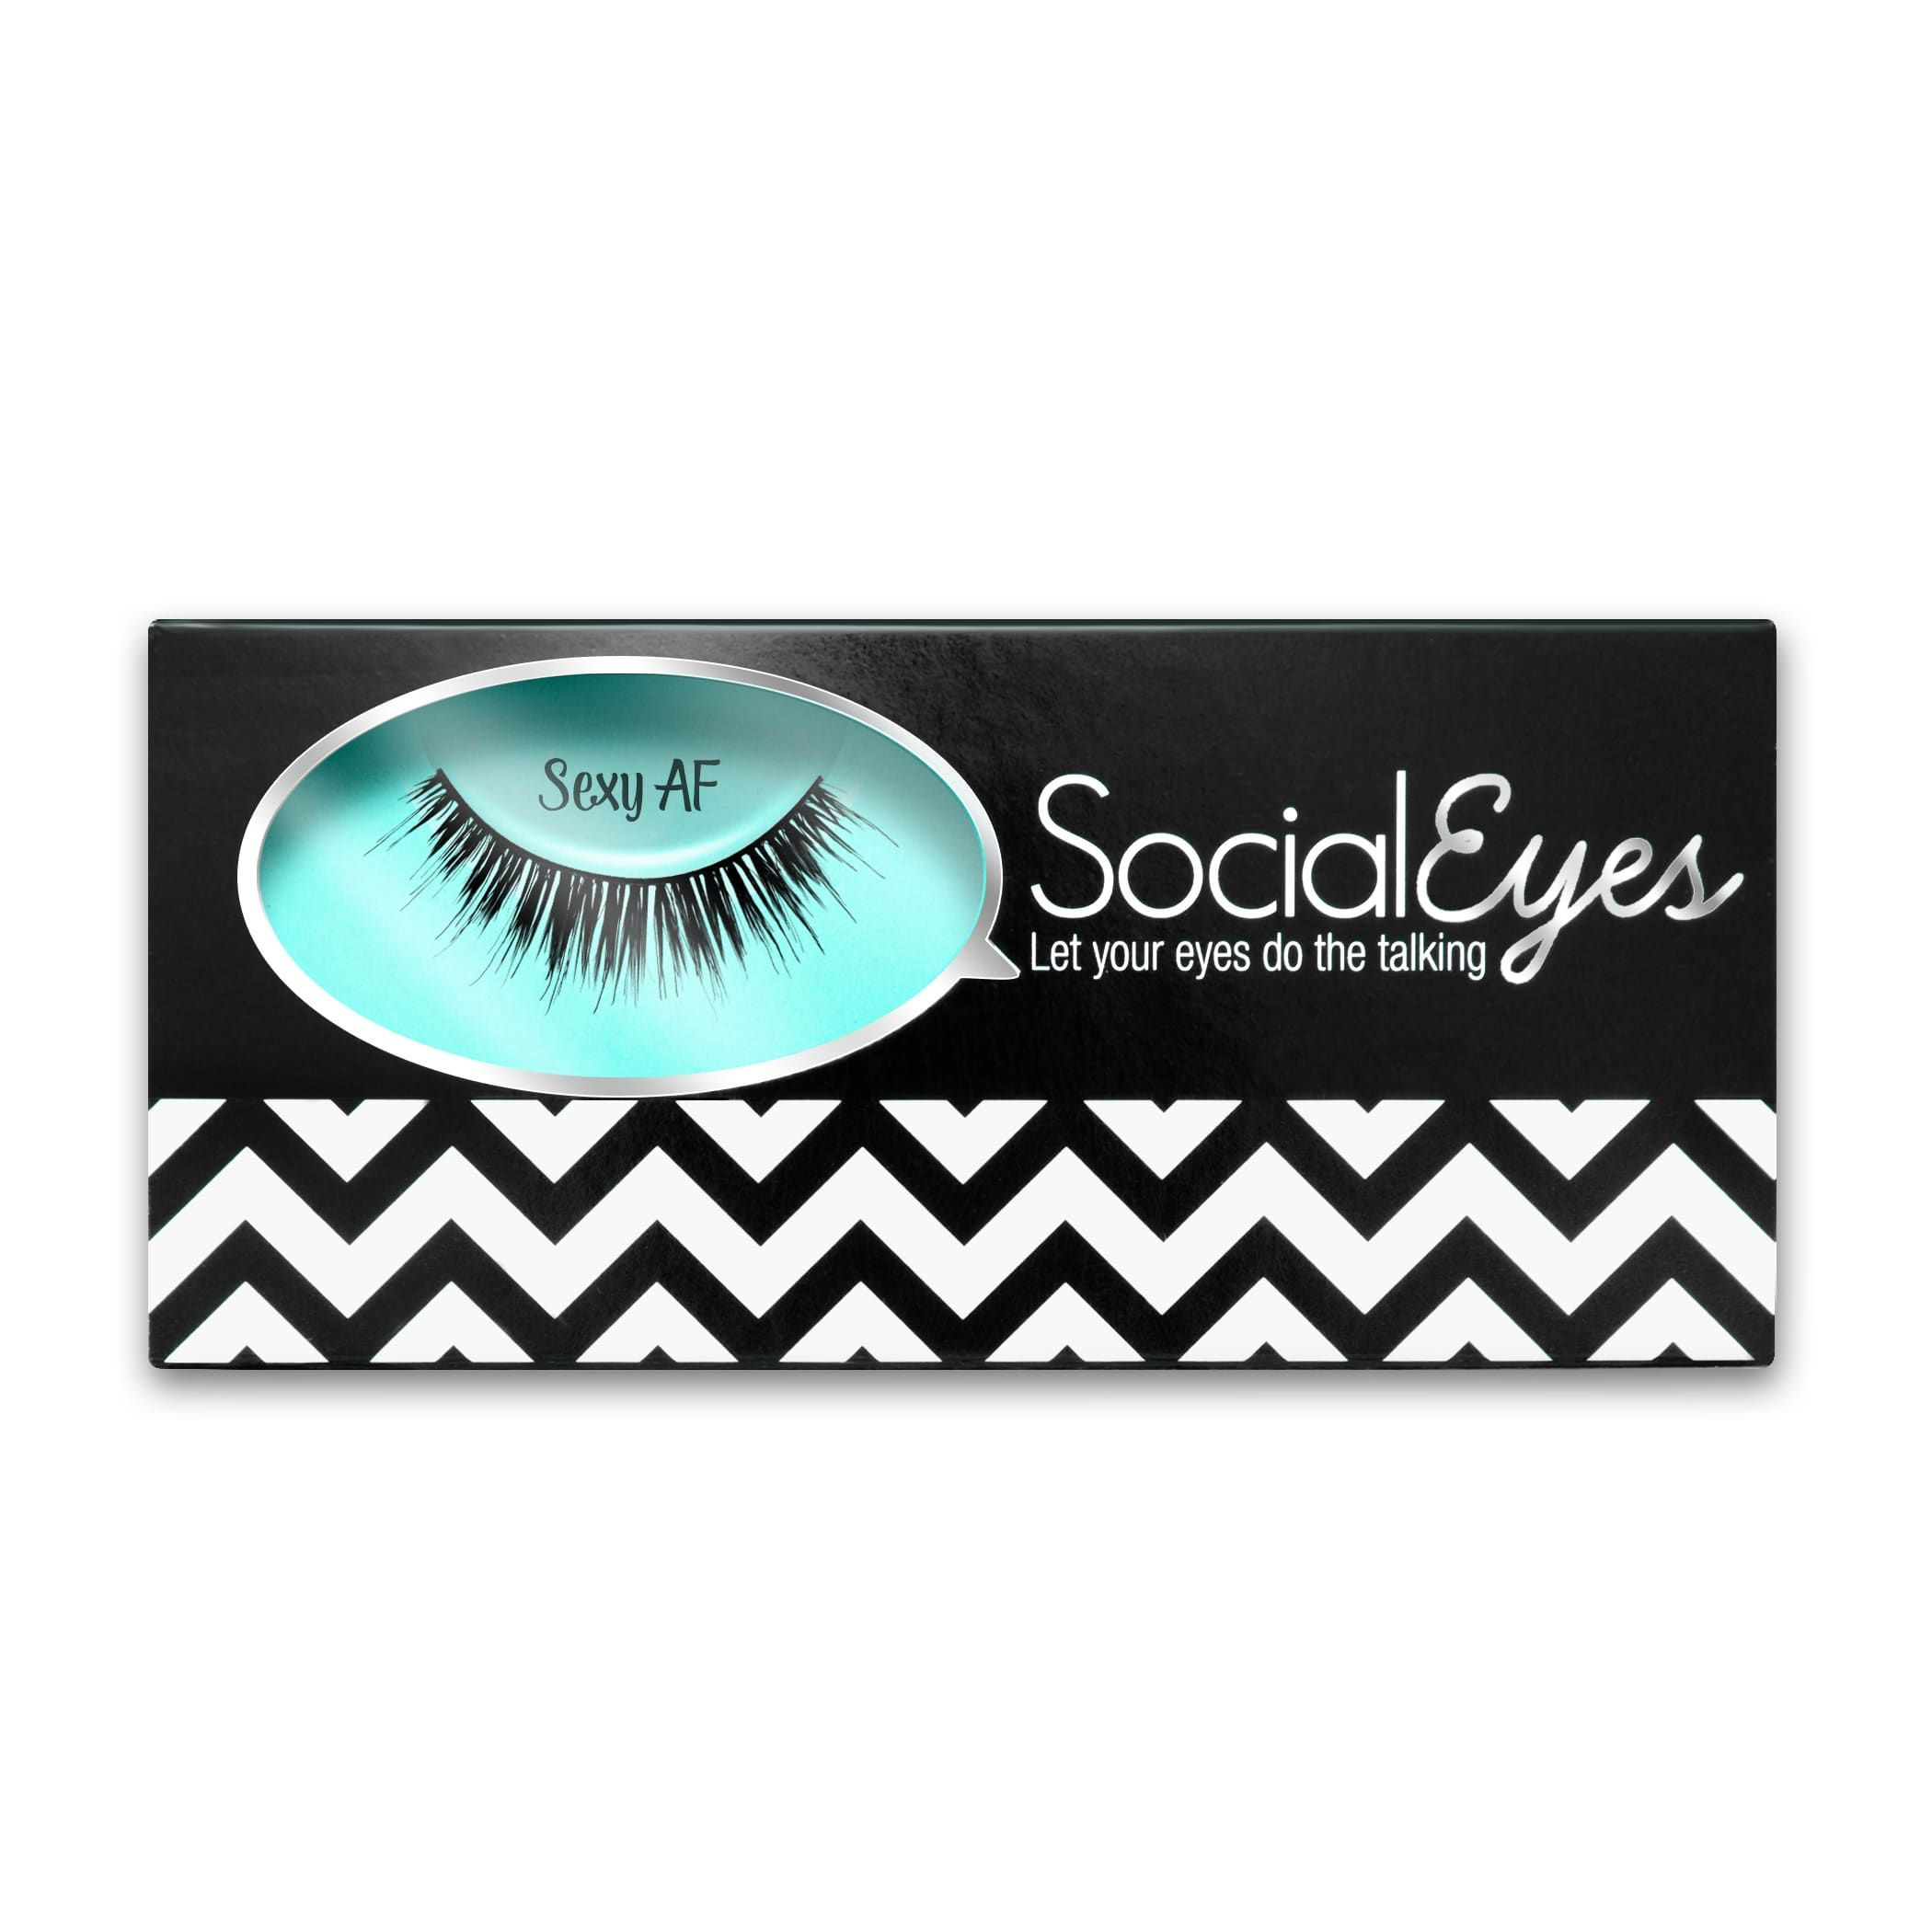 The Lashes Have Multiple Lengths Throughout To Give Your Eyelashes A